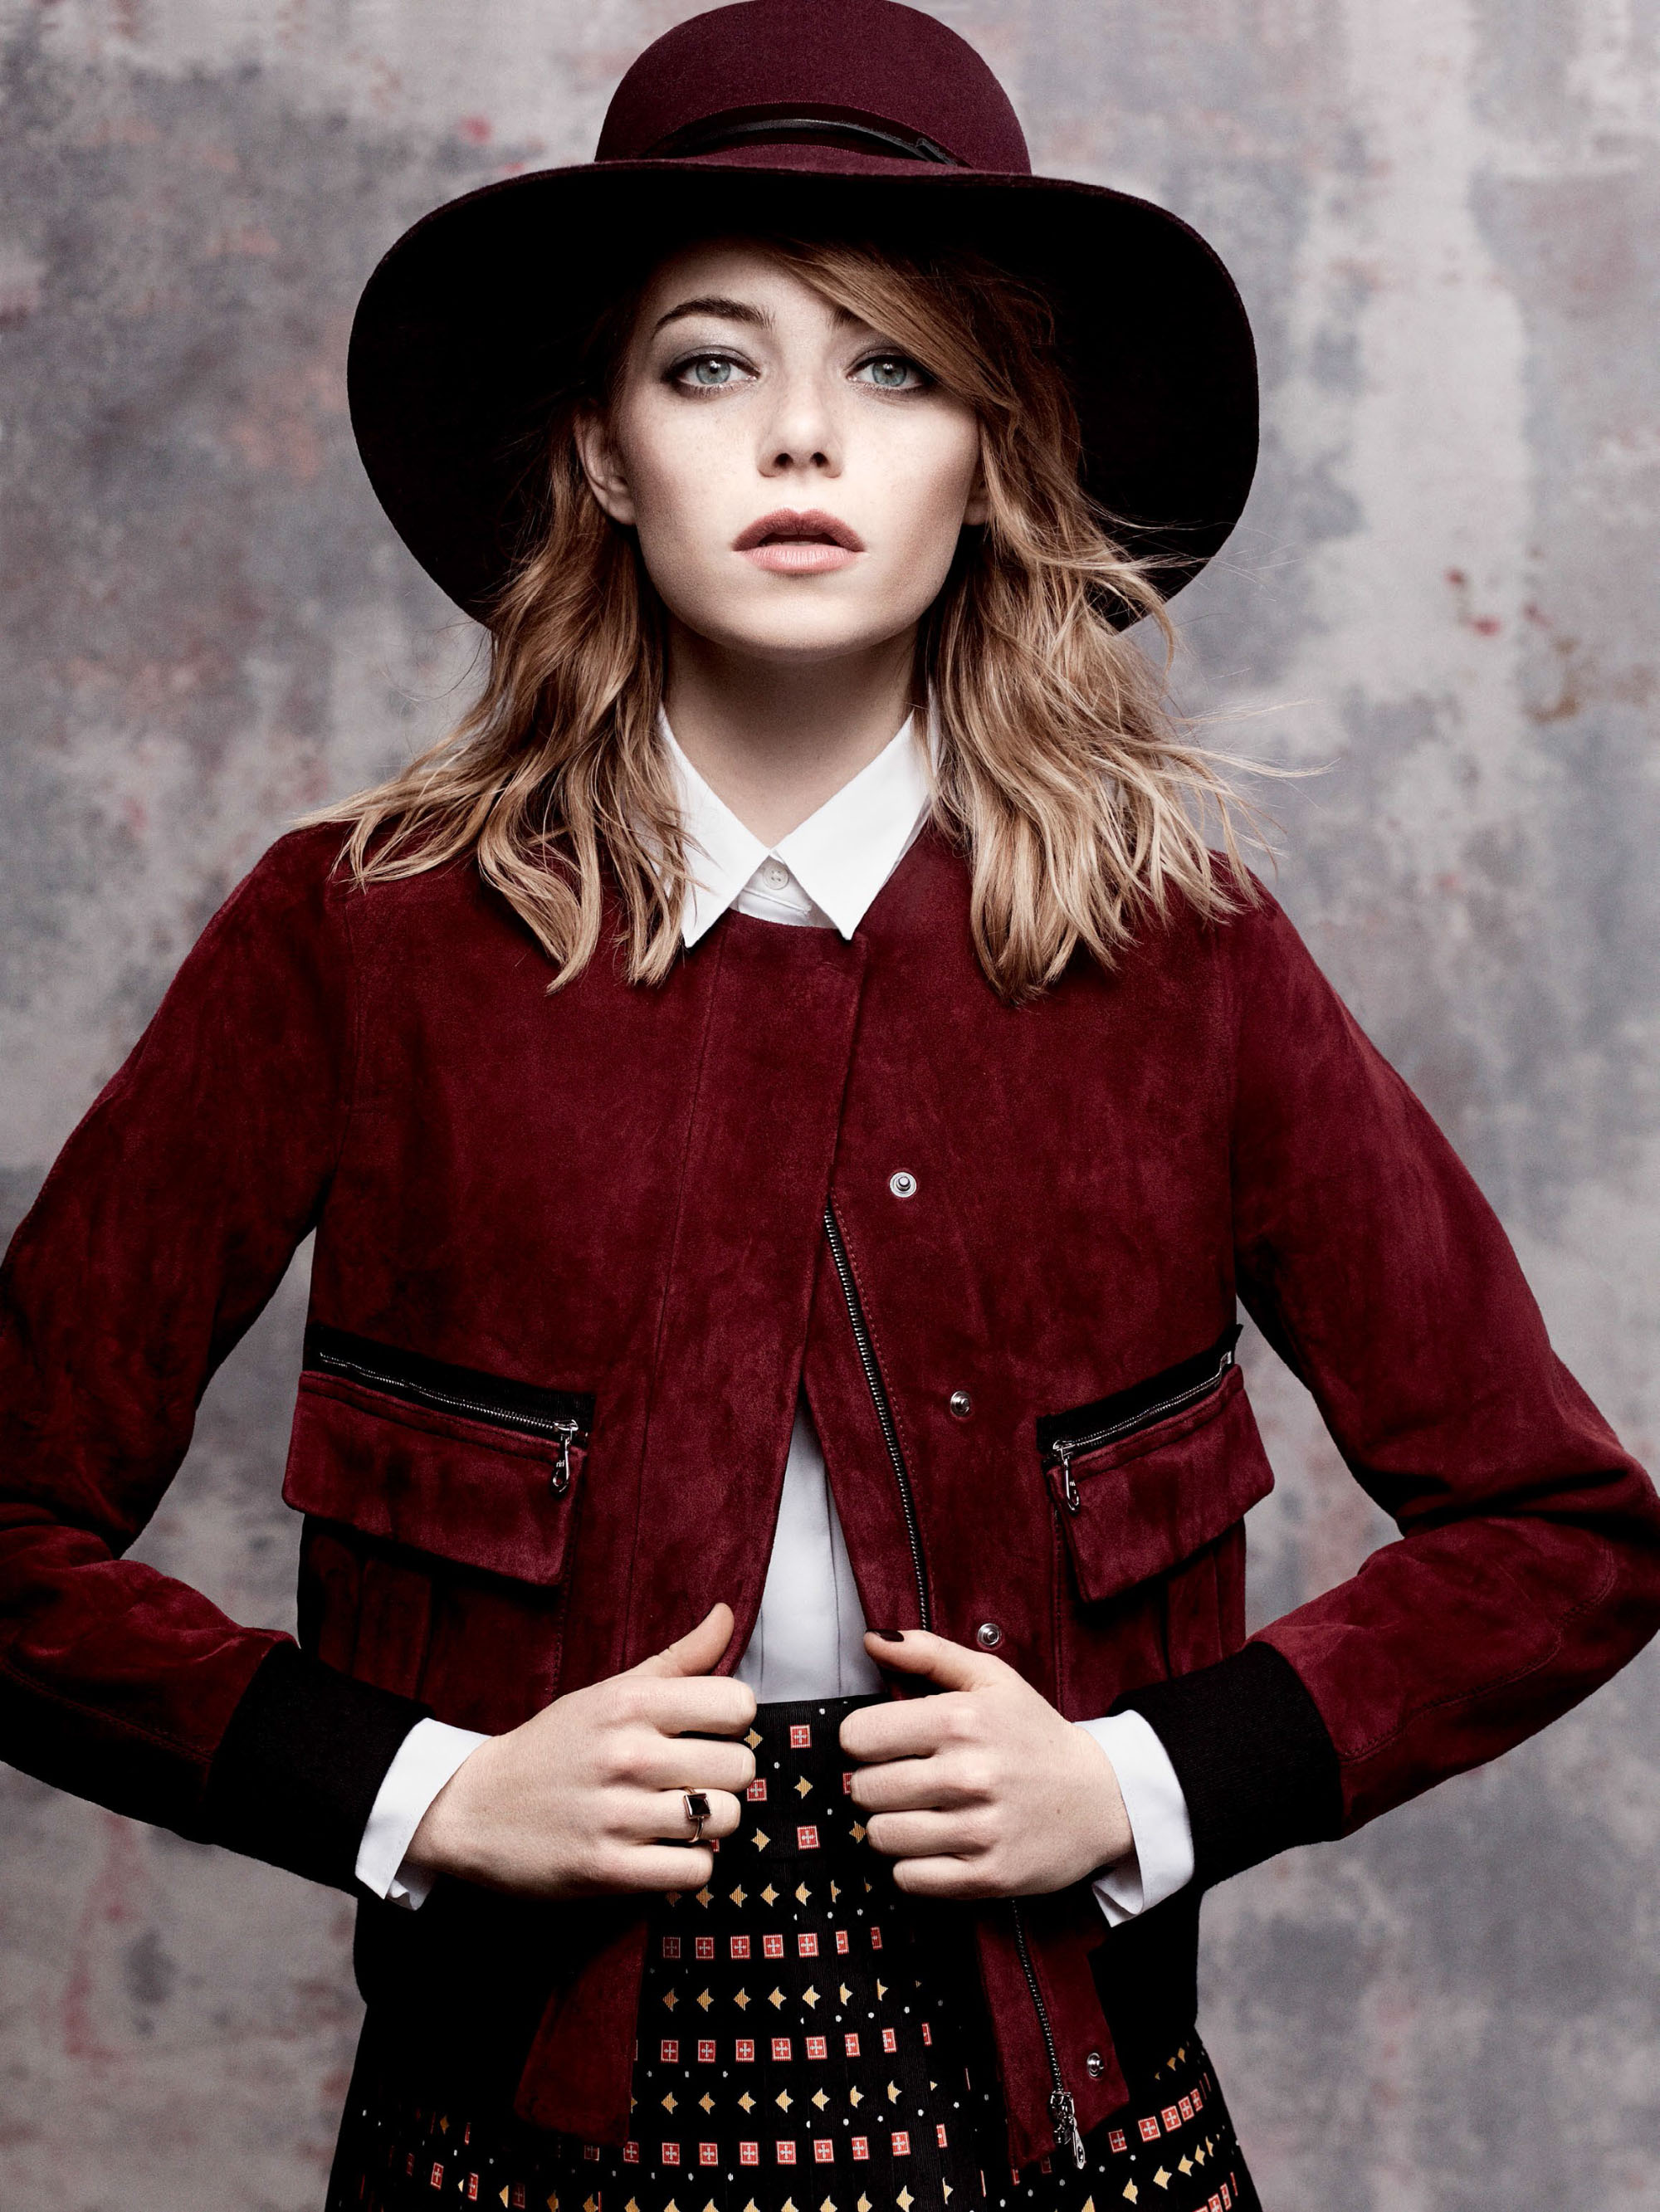 emma-stone-by-craig-mcdean-for-vogue-us-may-2014-5